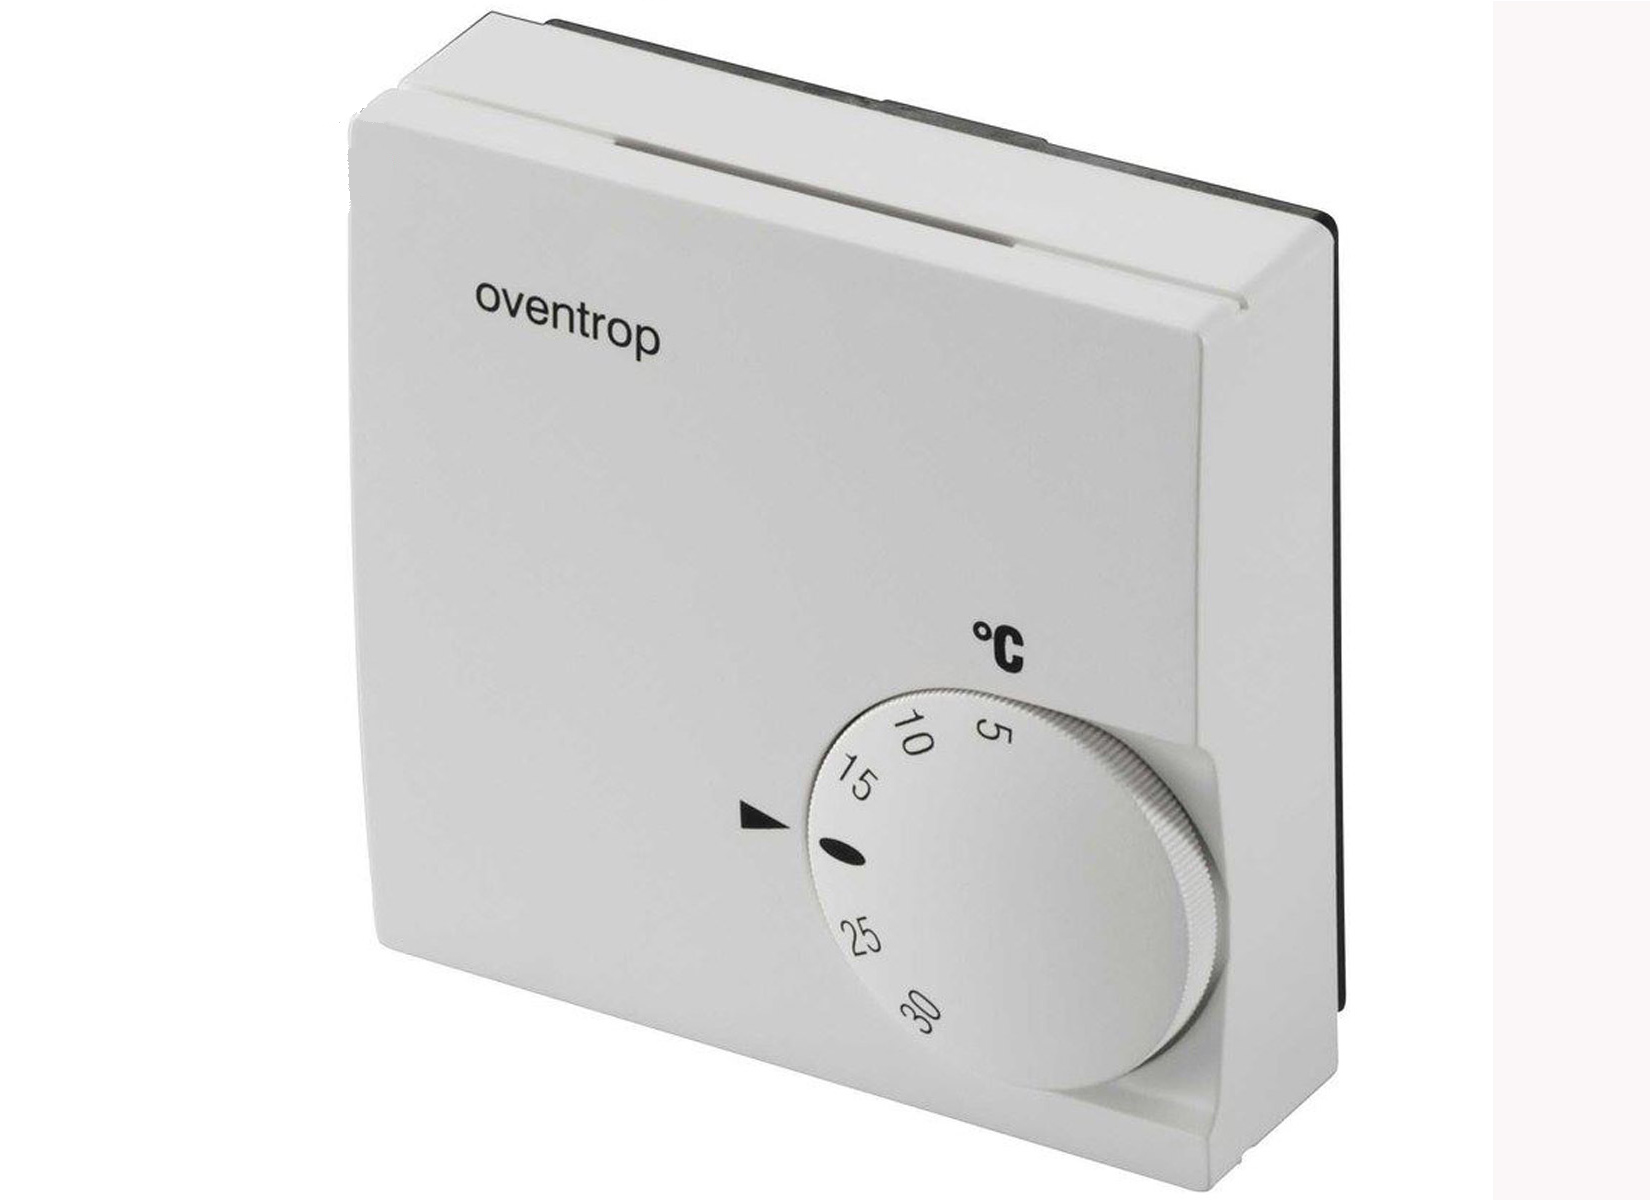 oventrop raumthermostat 24v fu bodenheizung aufputz thermostat bodenheizung ebay. Black Bedroom Furniture Sets. Home Design Ideas